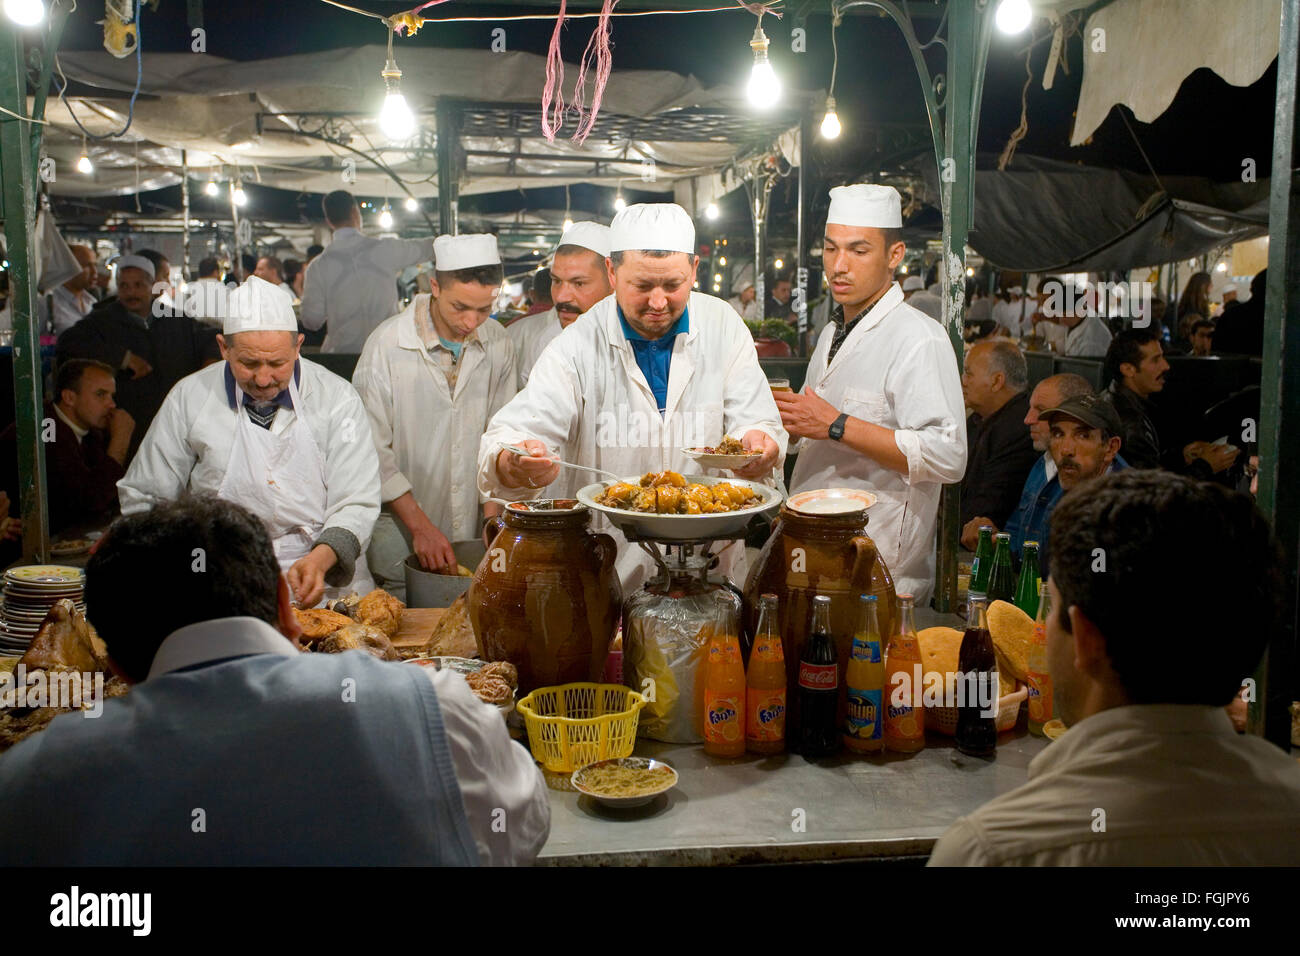 Chefs cooking food in Jemaa El Fna Square in Marrakech Morocco - Stock Image